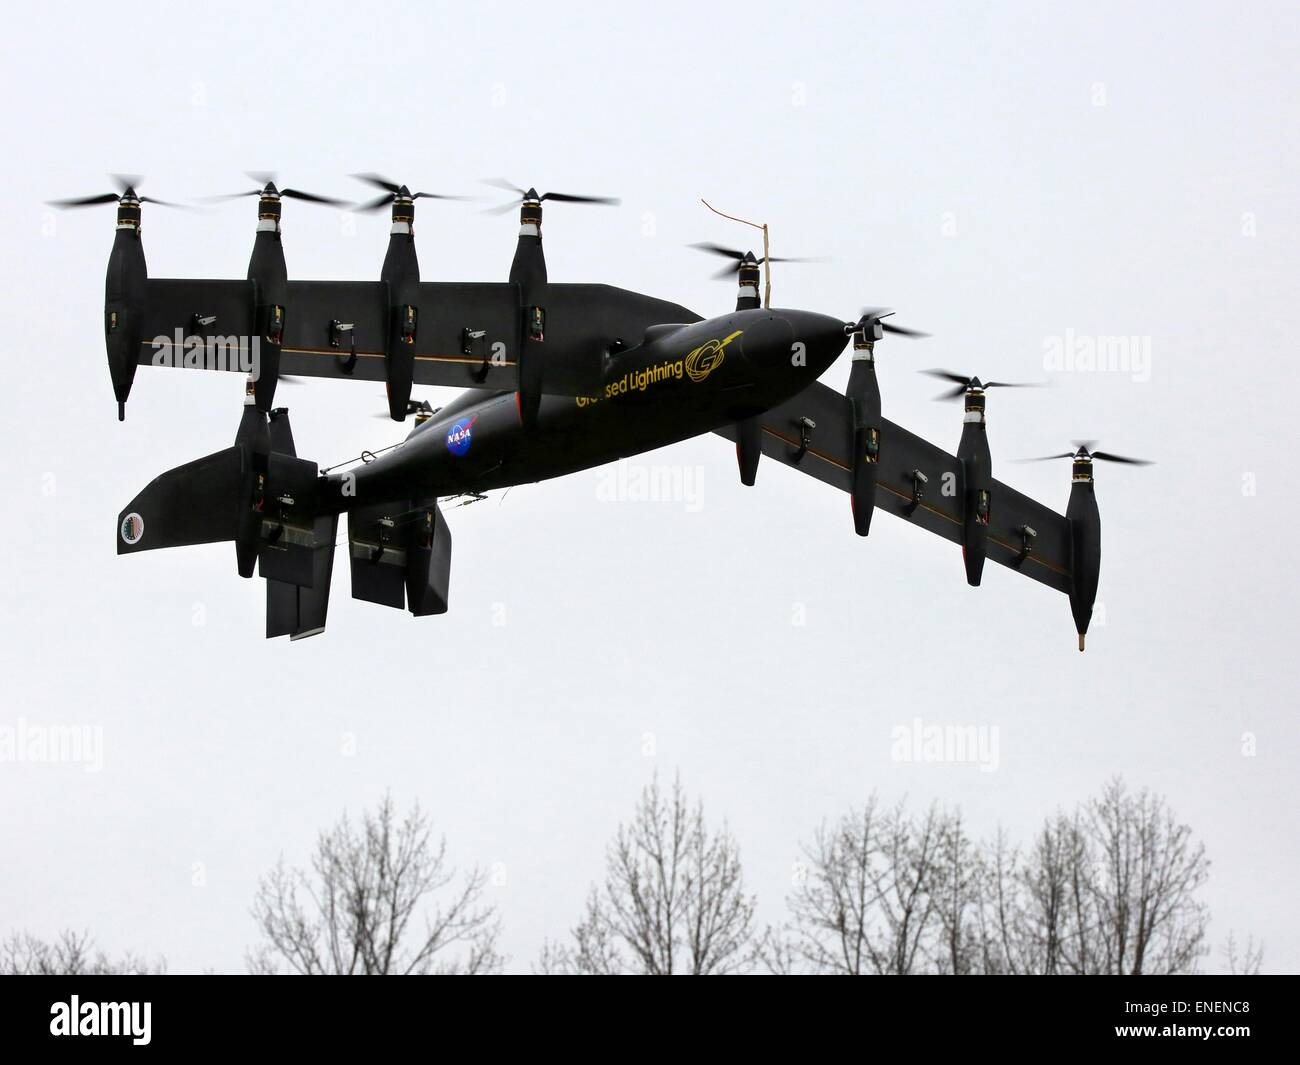 The prototype 10 engine battery-powered plane called Greased Lightning developed by NASA's Langley Research - Stock Image